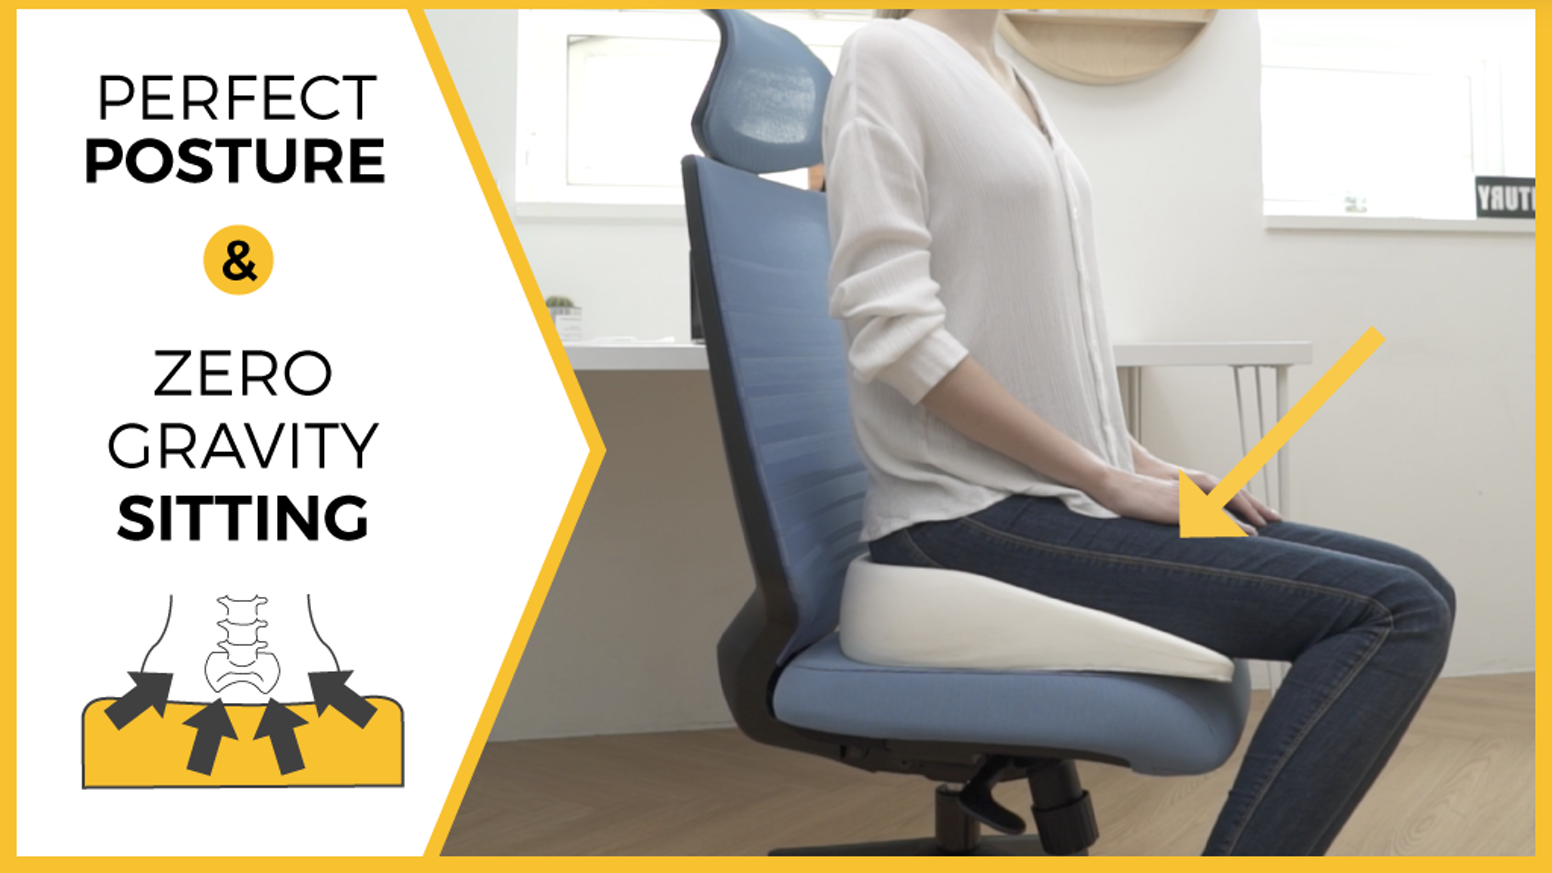 Weightless Sitting Zero Gravity Upright Posture Cushion By Good